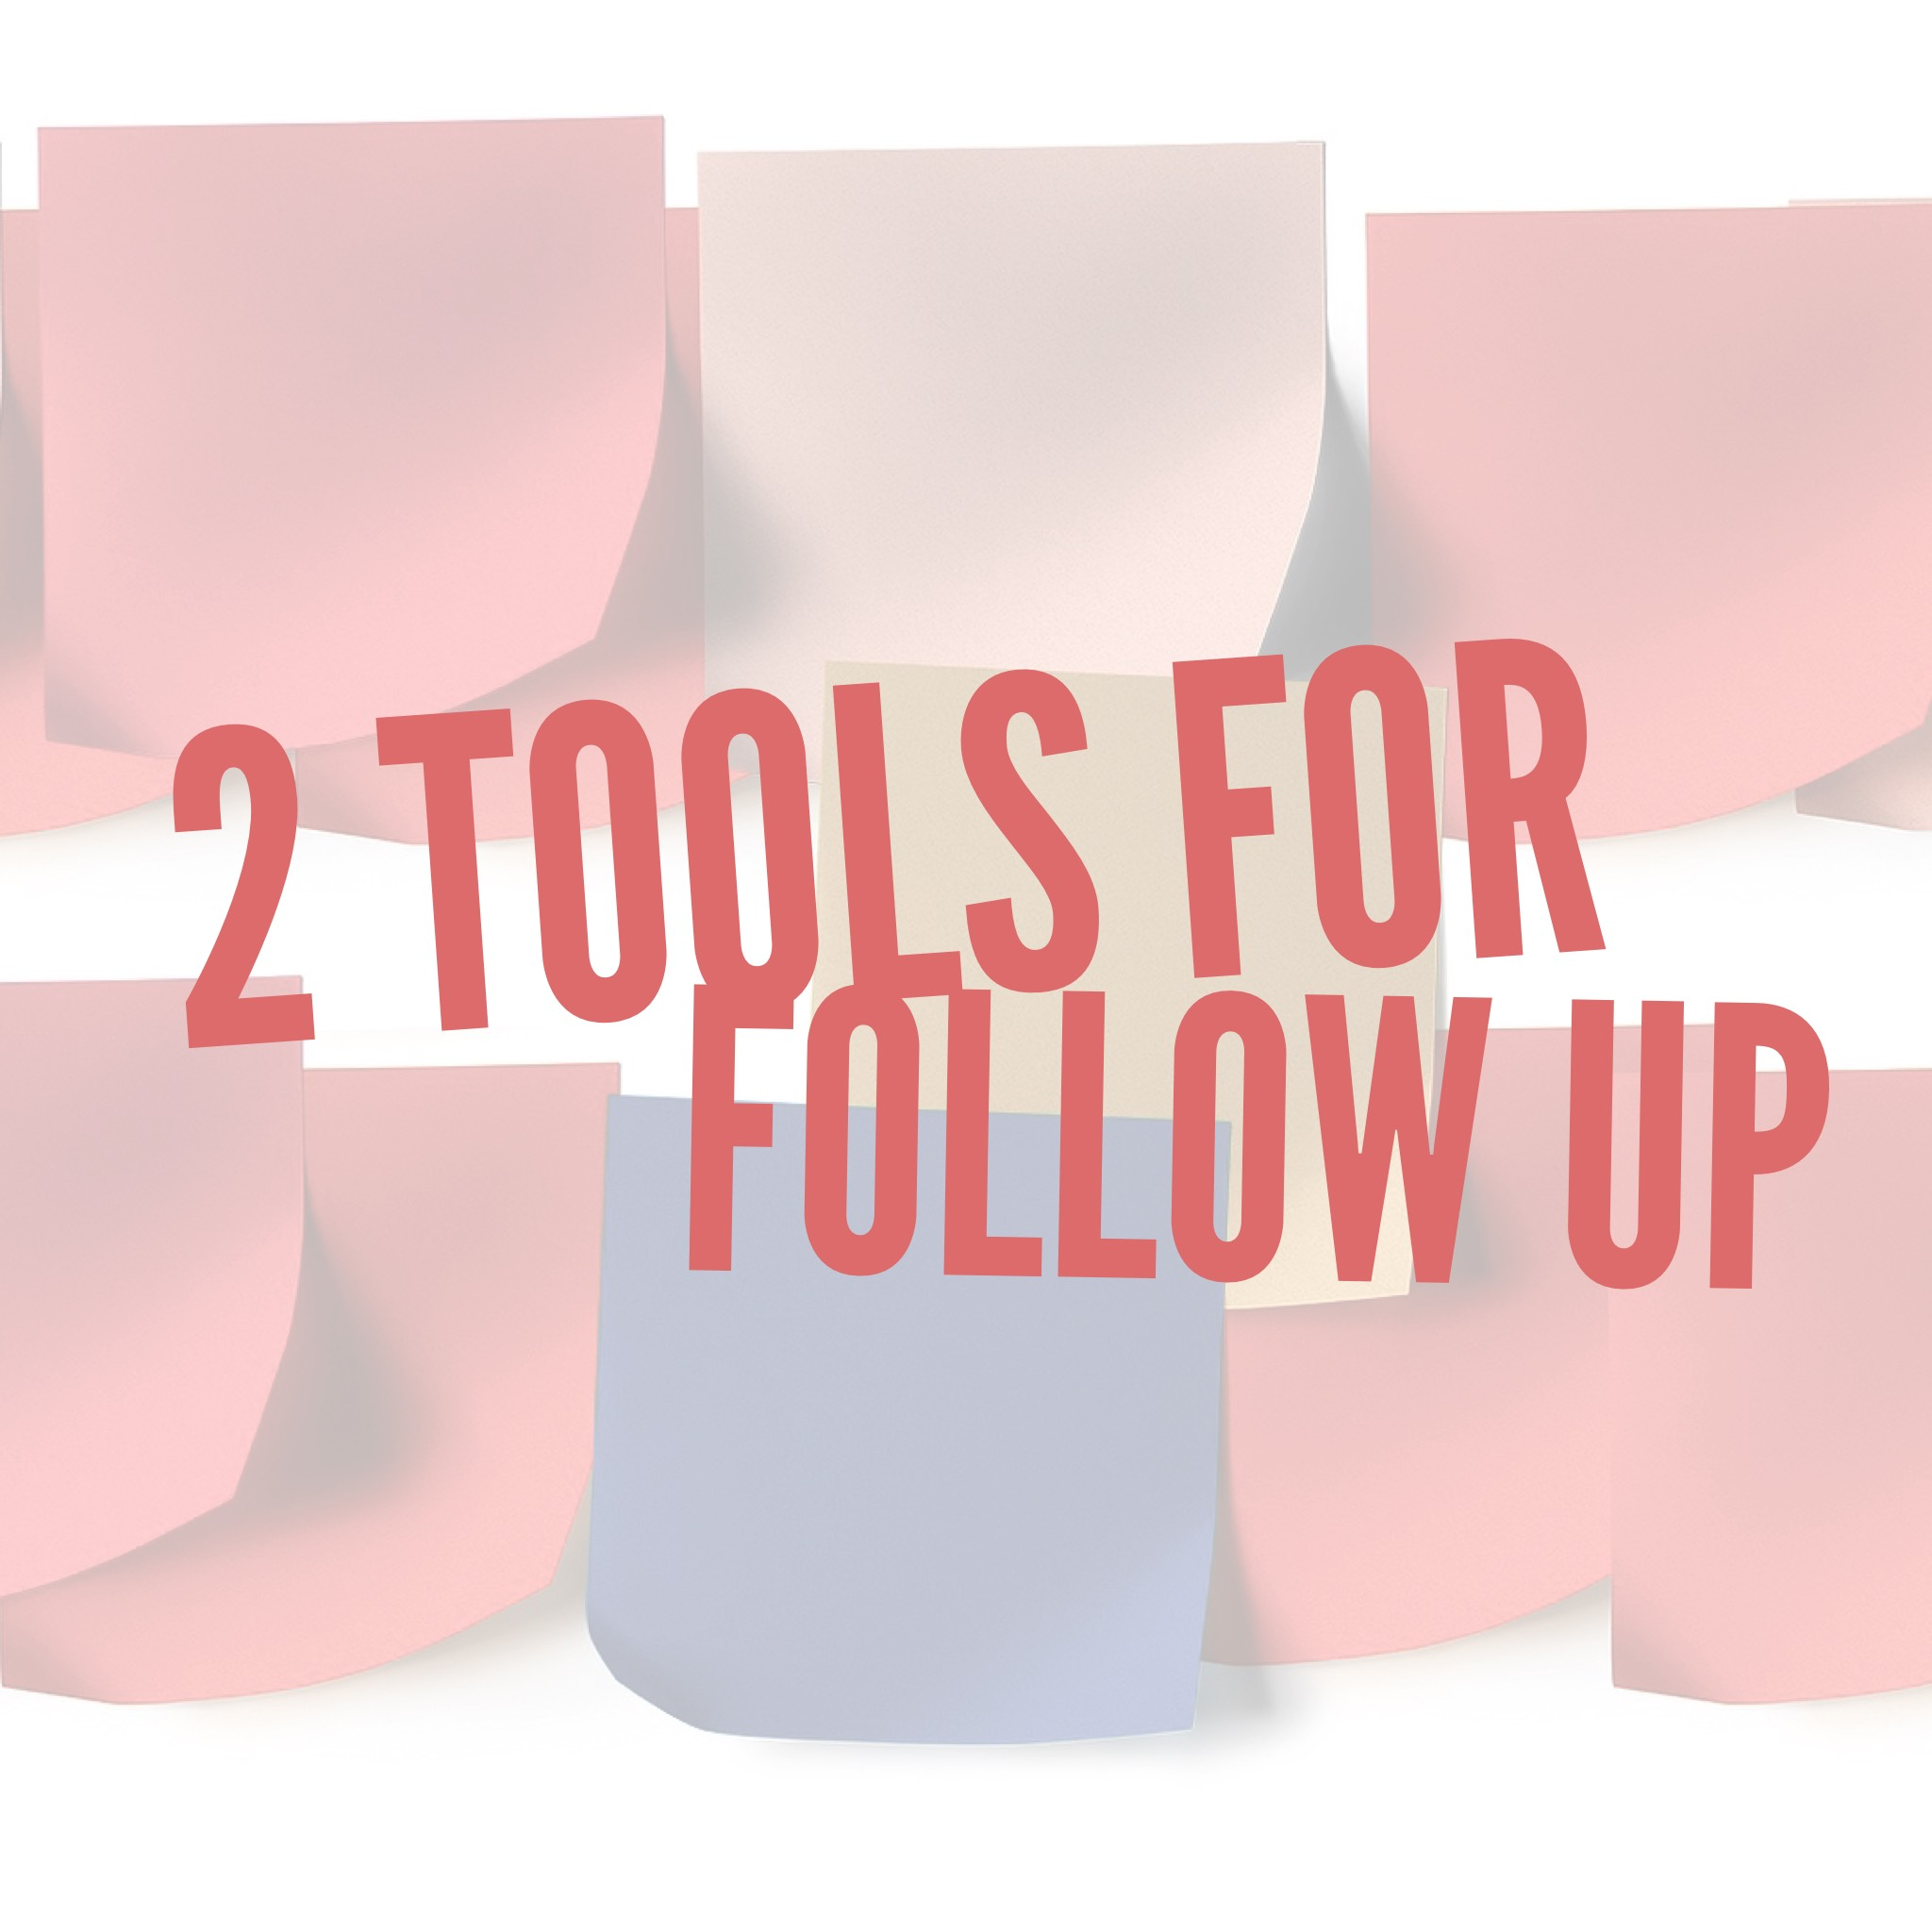 BUSINESS OWNERS: 2 Tools For Follow Up